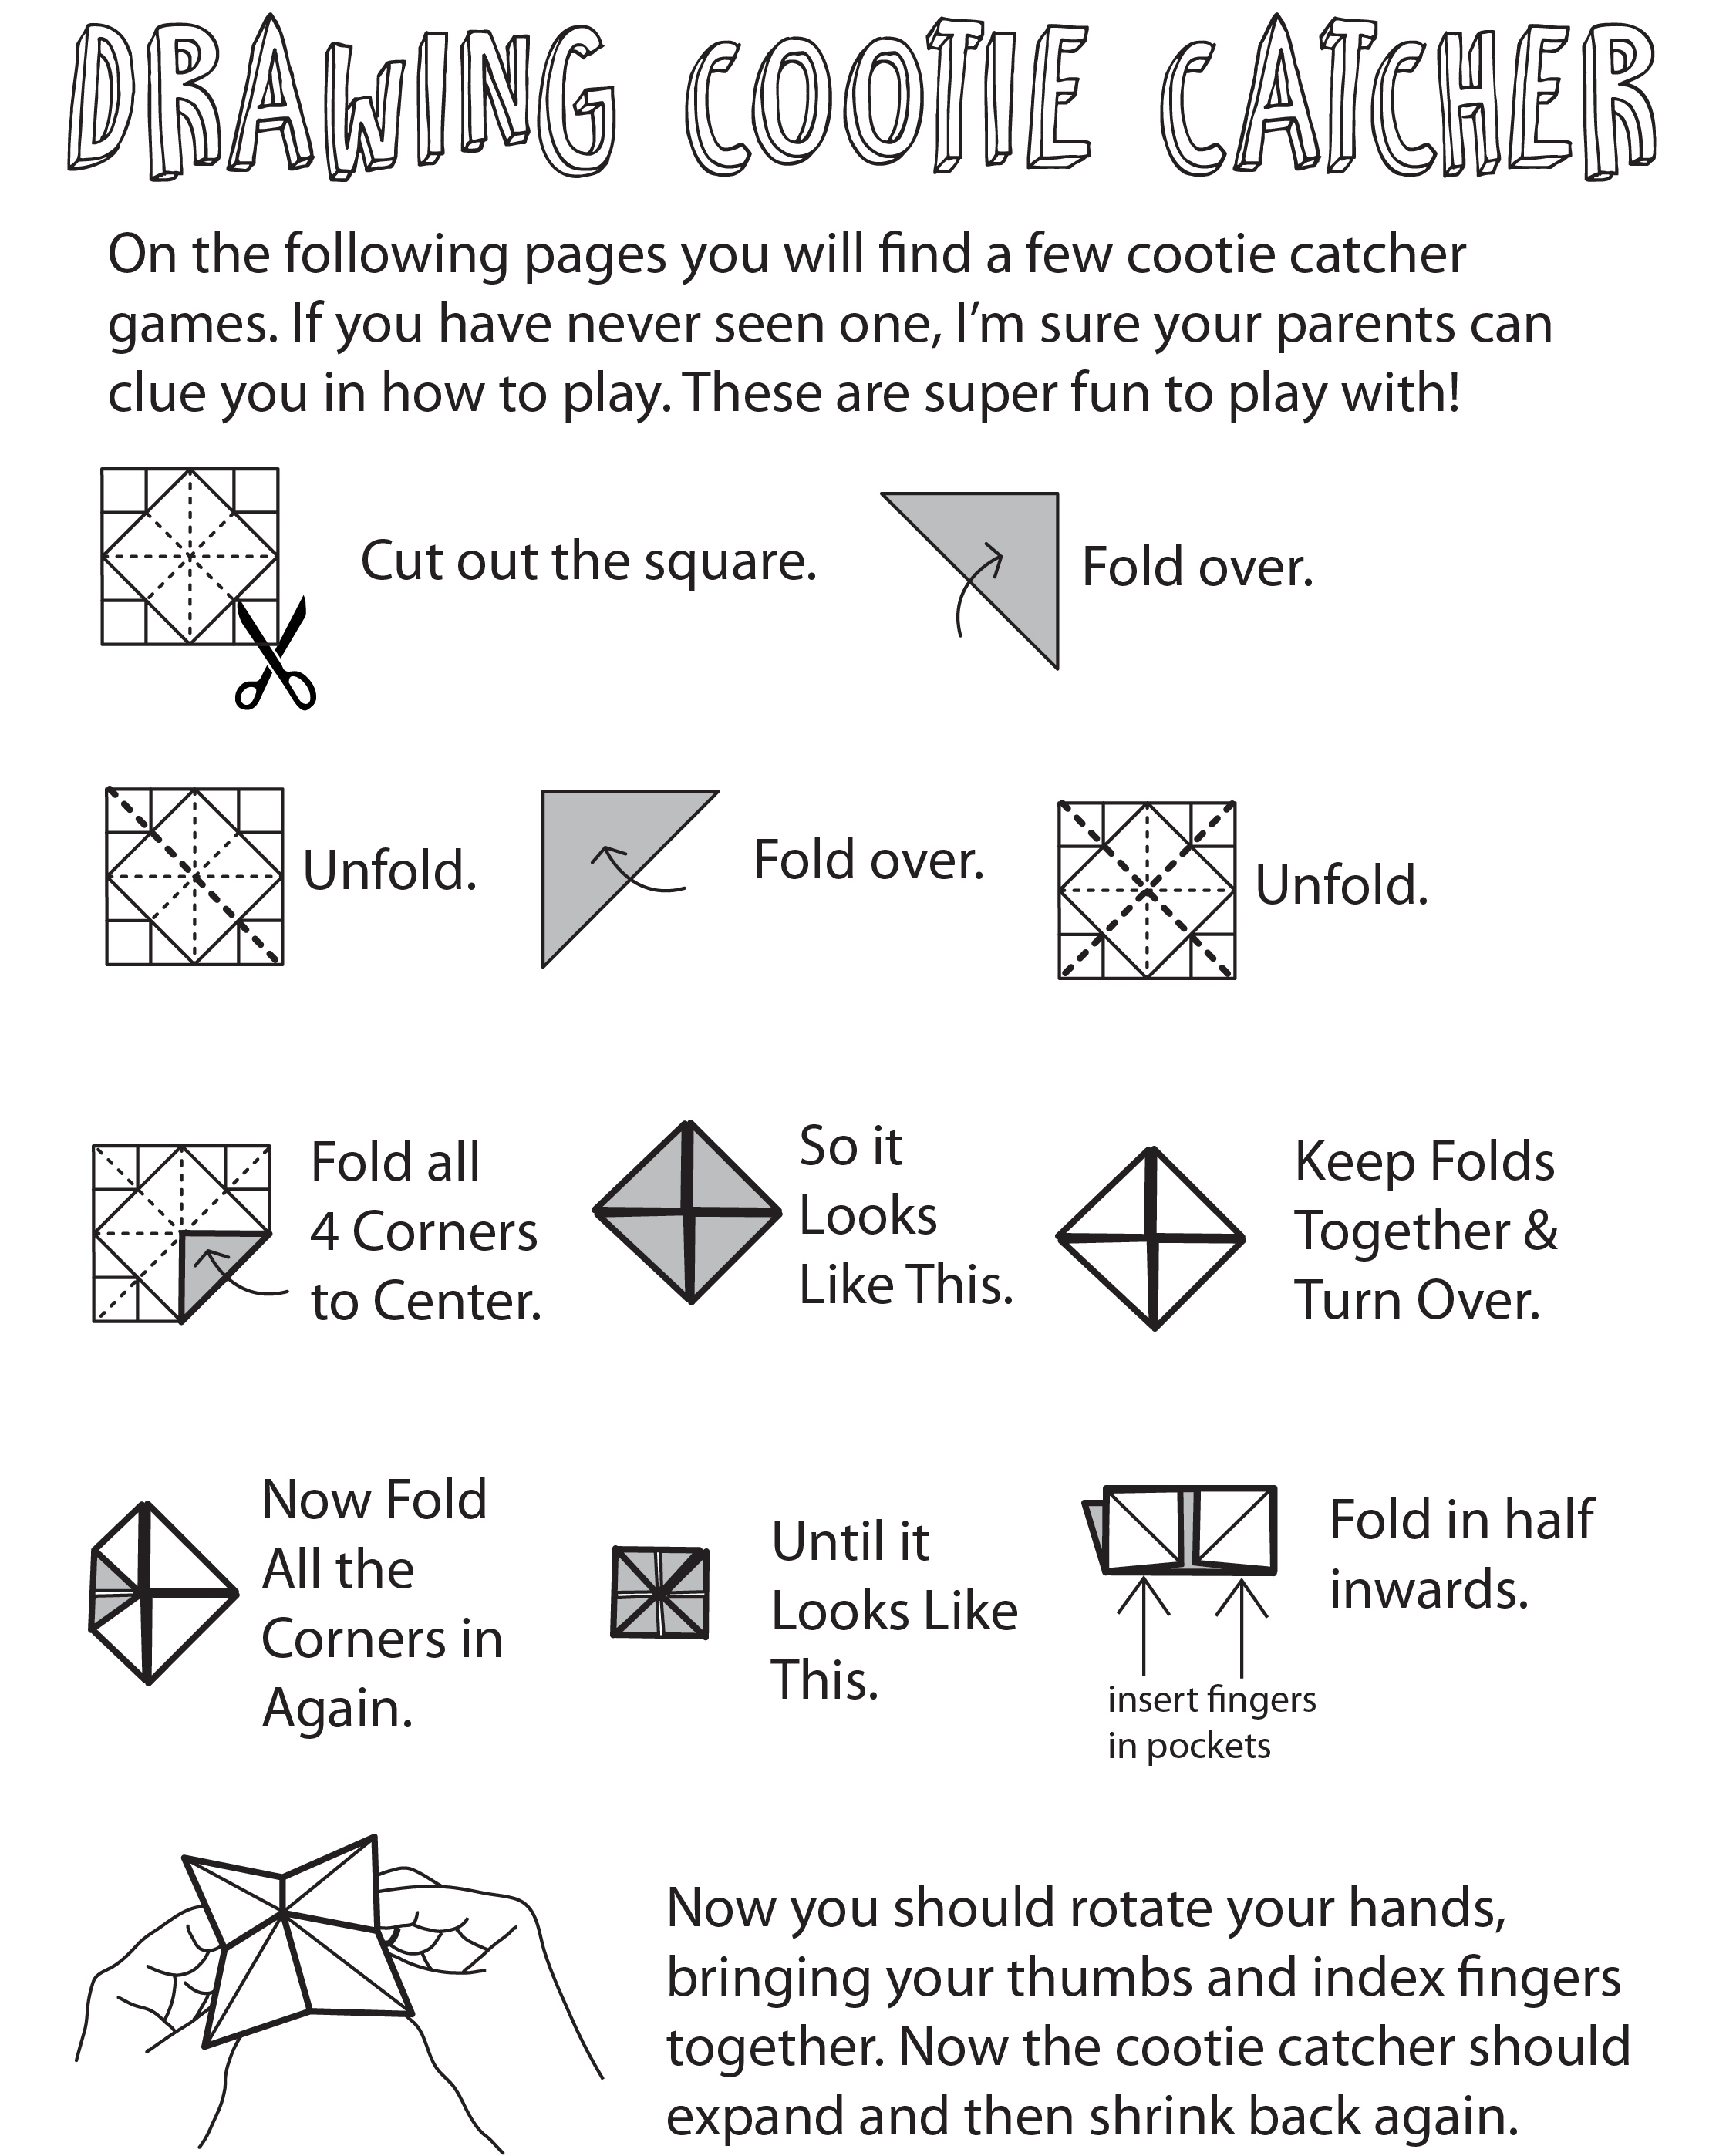 How To Play The Cootie Catcher Drawing Game - Fun For Kids Who Love To Draw - Step By Step ...